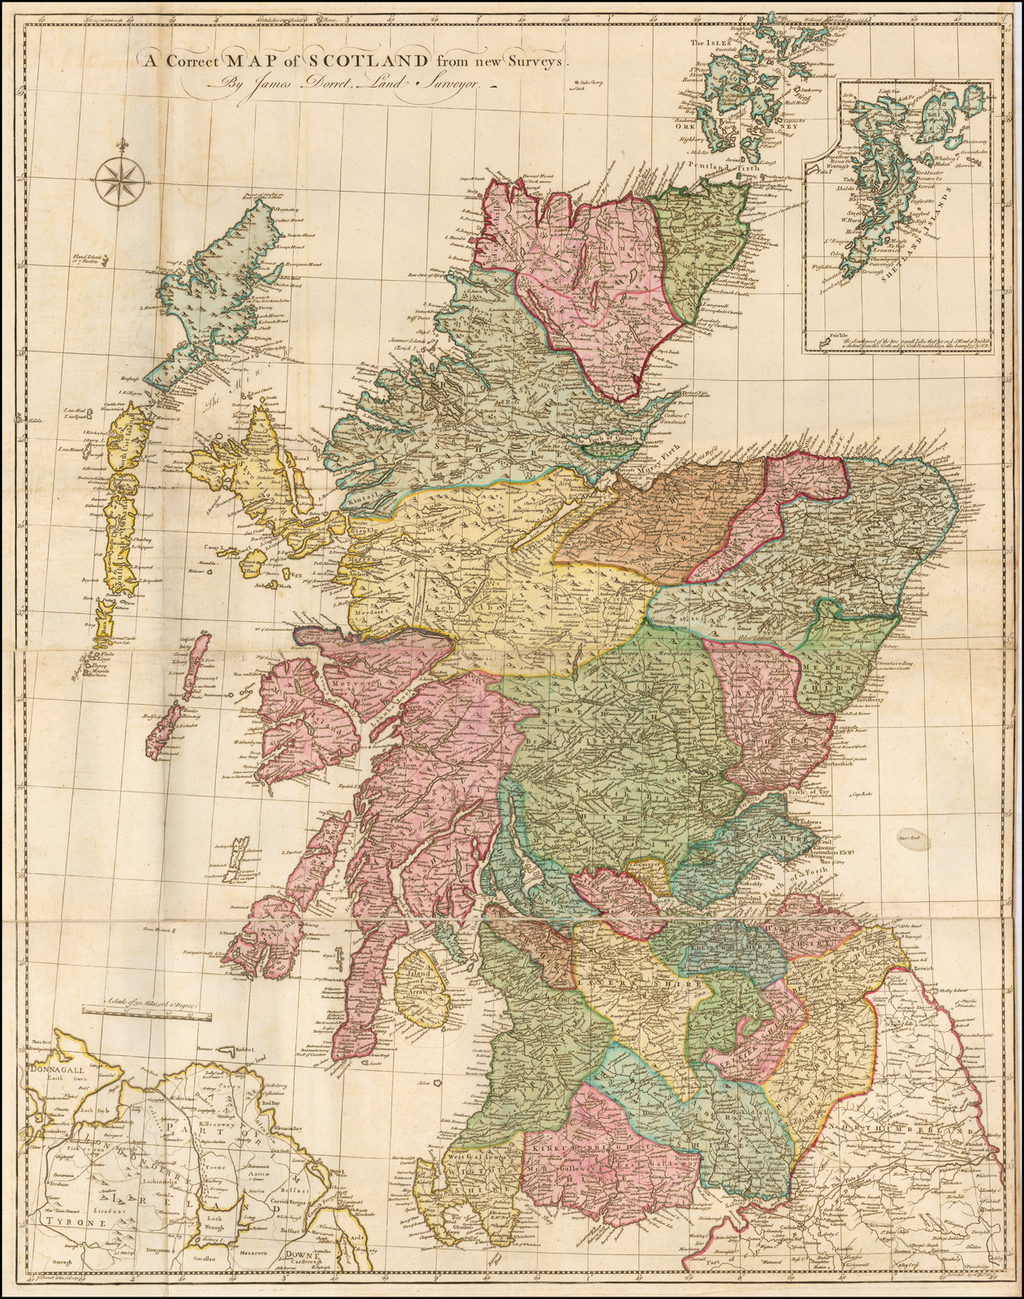 A Correct Map of Scotland from new Surveys. By James Dorret, Land Surveyor. By James Dorret